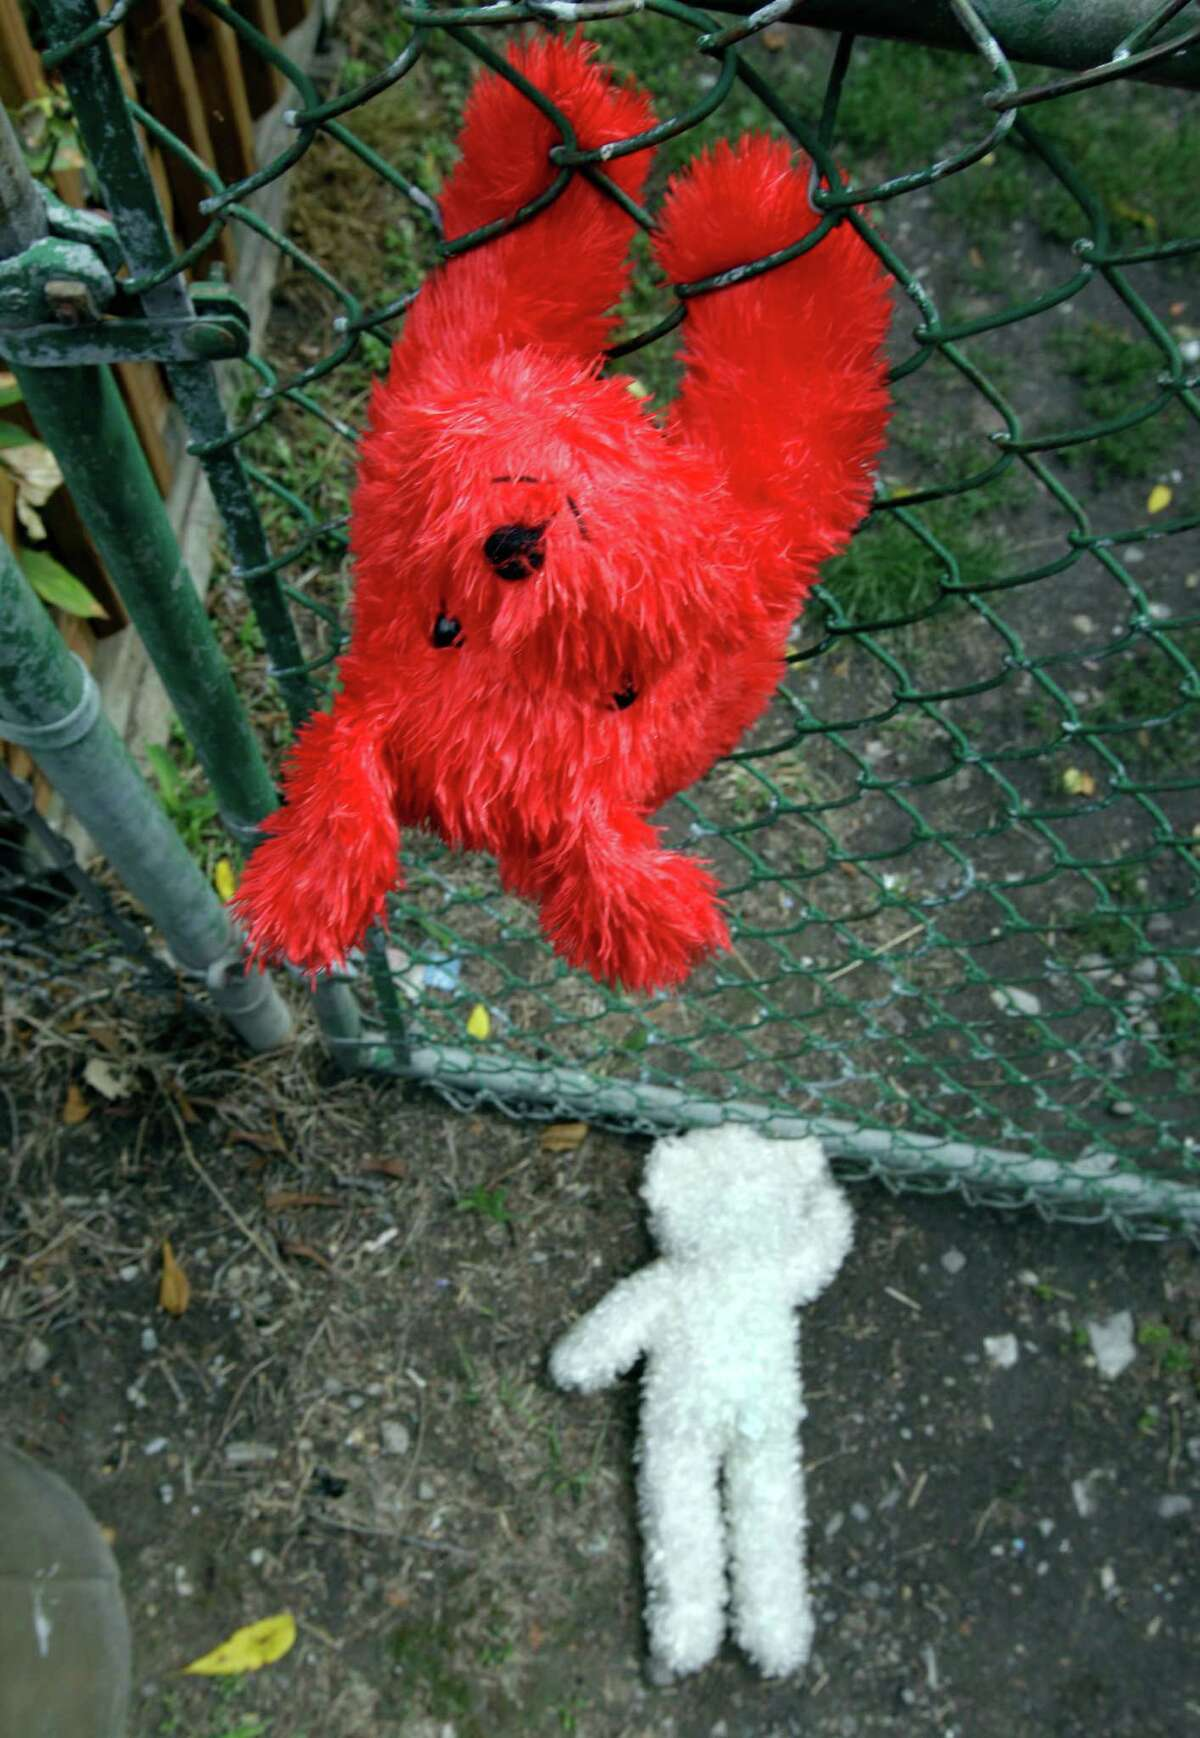 Memorial stuffed animals are shown near the back gate of a home where 5-year-old Isabella Sarah Tennant had been staying with a relative in Niagara Falls, N.Y., Tuesday, Aug. 28, 2012. Authorities said 16-year-old John Freeman and 18-year-old Tyler Best are scheduled to be arraigned Tuesday morning in Niagara Falls City Court in connection with the death of the 5-year-old New York girl. Police have charged Freeman as an adult, and he faces a murder charge. Best is charged with tampering with evidence.